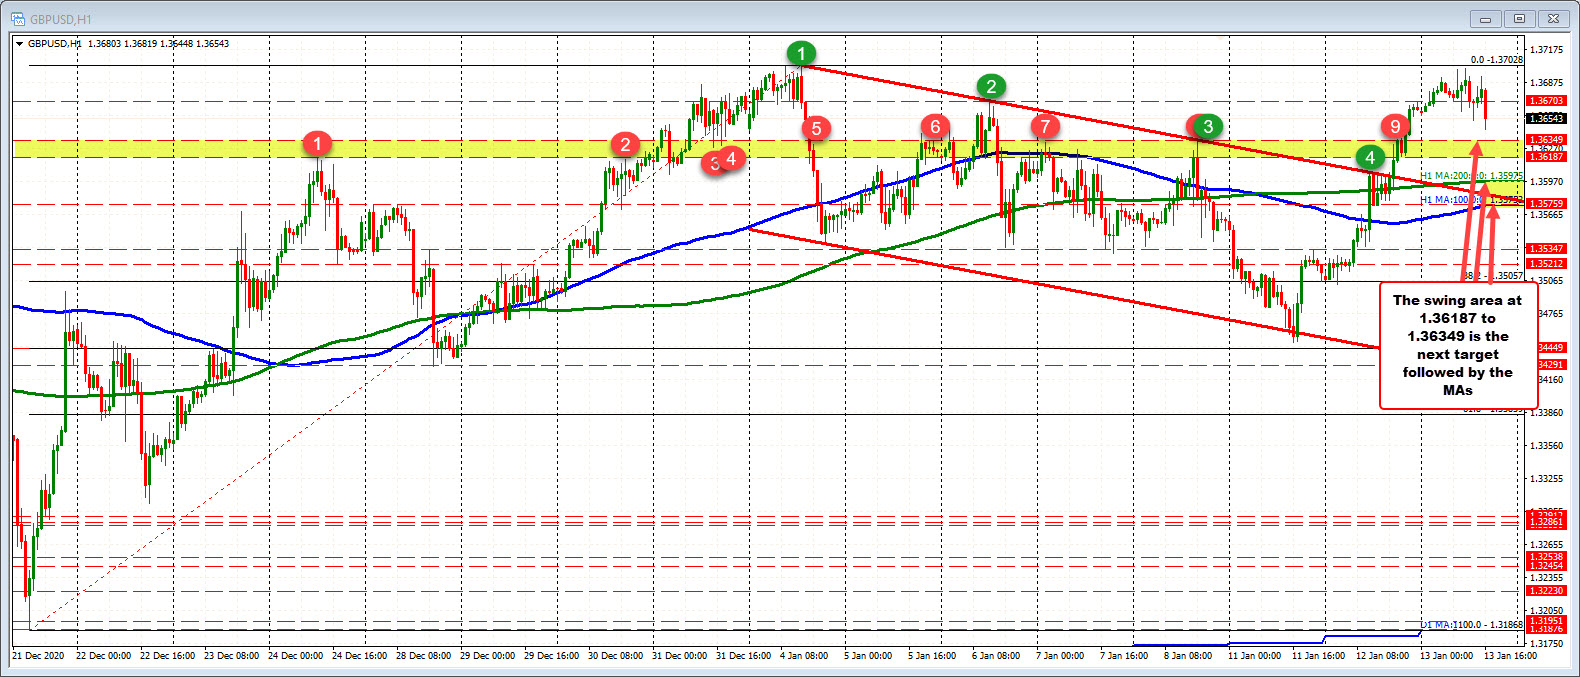 High in GBPUSD stalls at 1.3700 just ahead of the January 4 at 1.37028